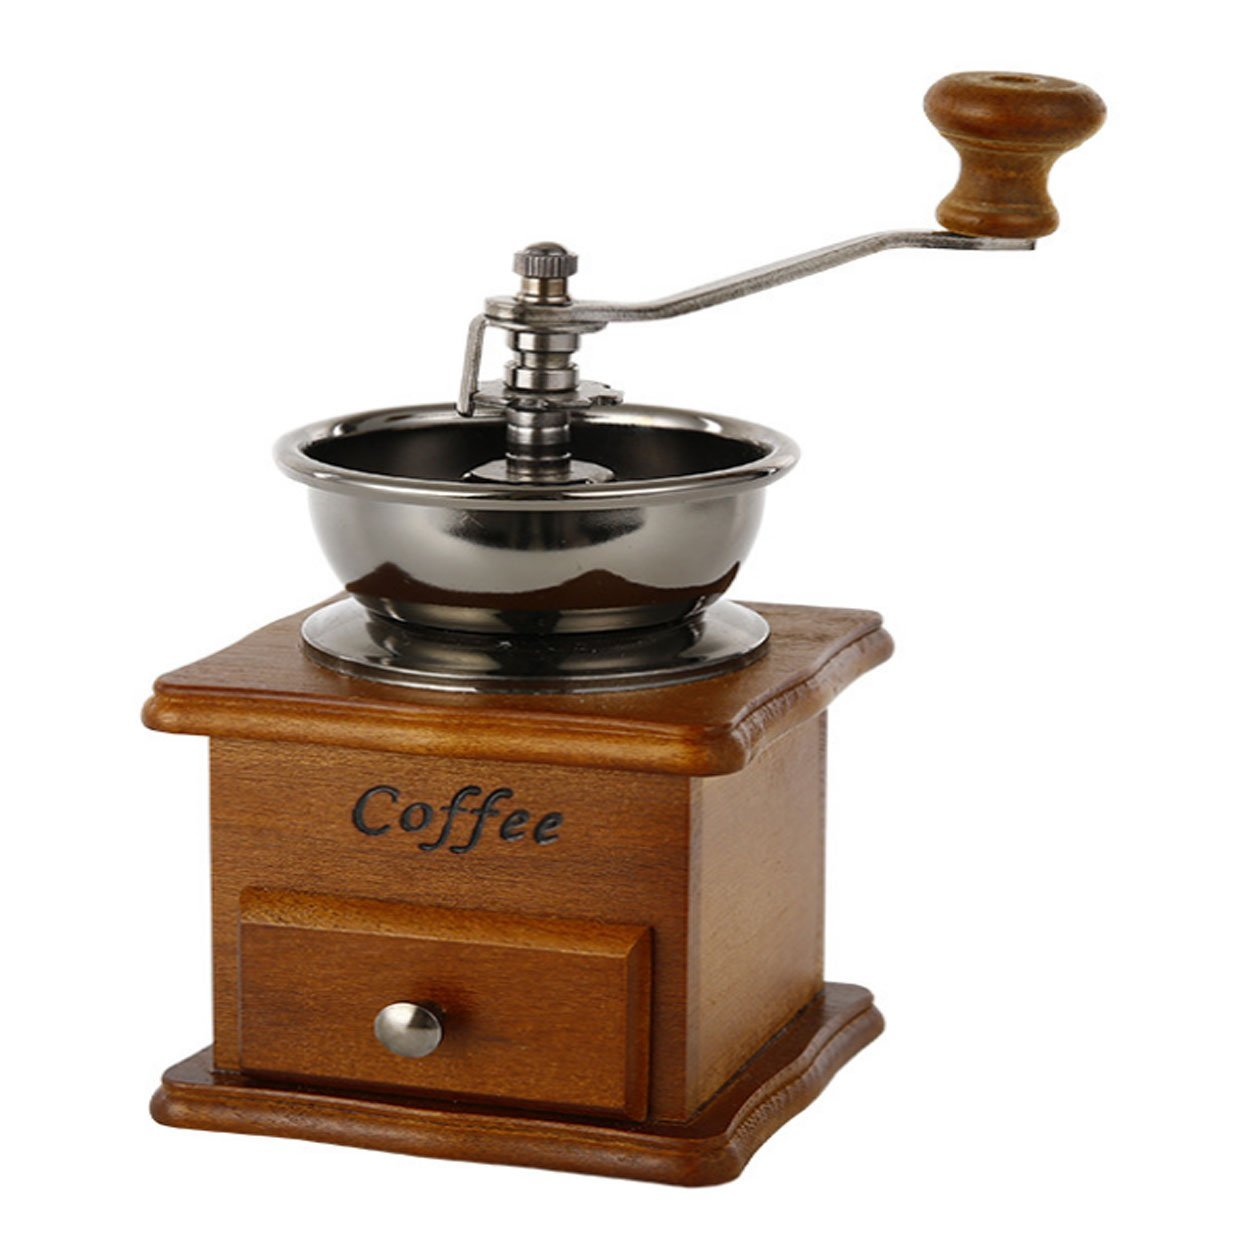 AMOAR-PERFREE Manual Coffee Grinder AGrinder Spice Herbs Vintage Style Wooden Retro Burr Mill - Manual Grinding Bean Machine,Small